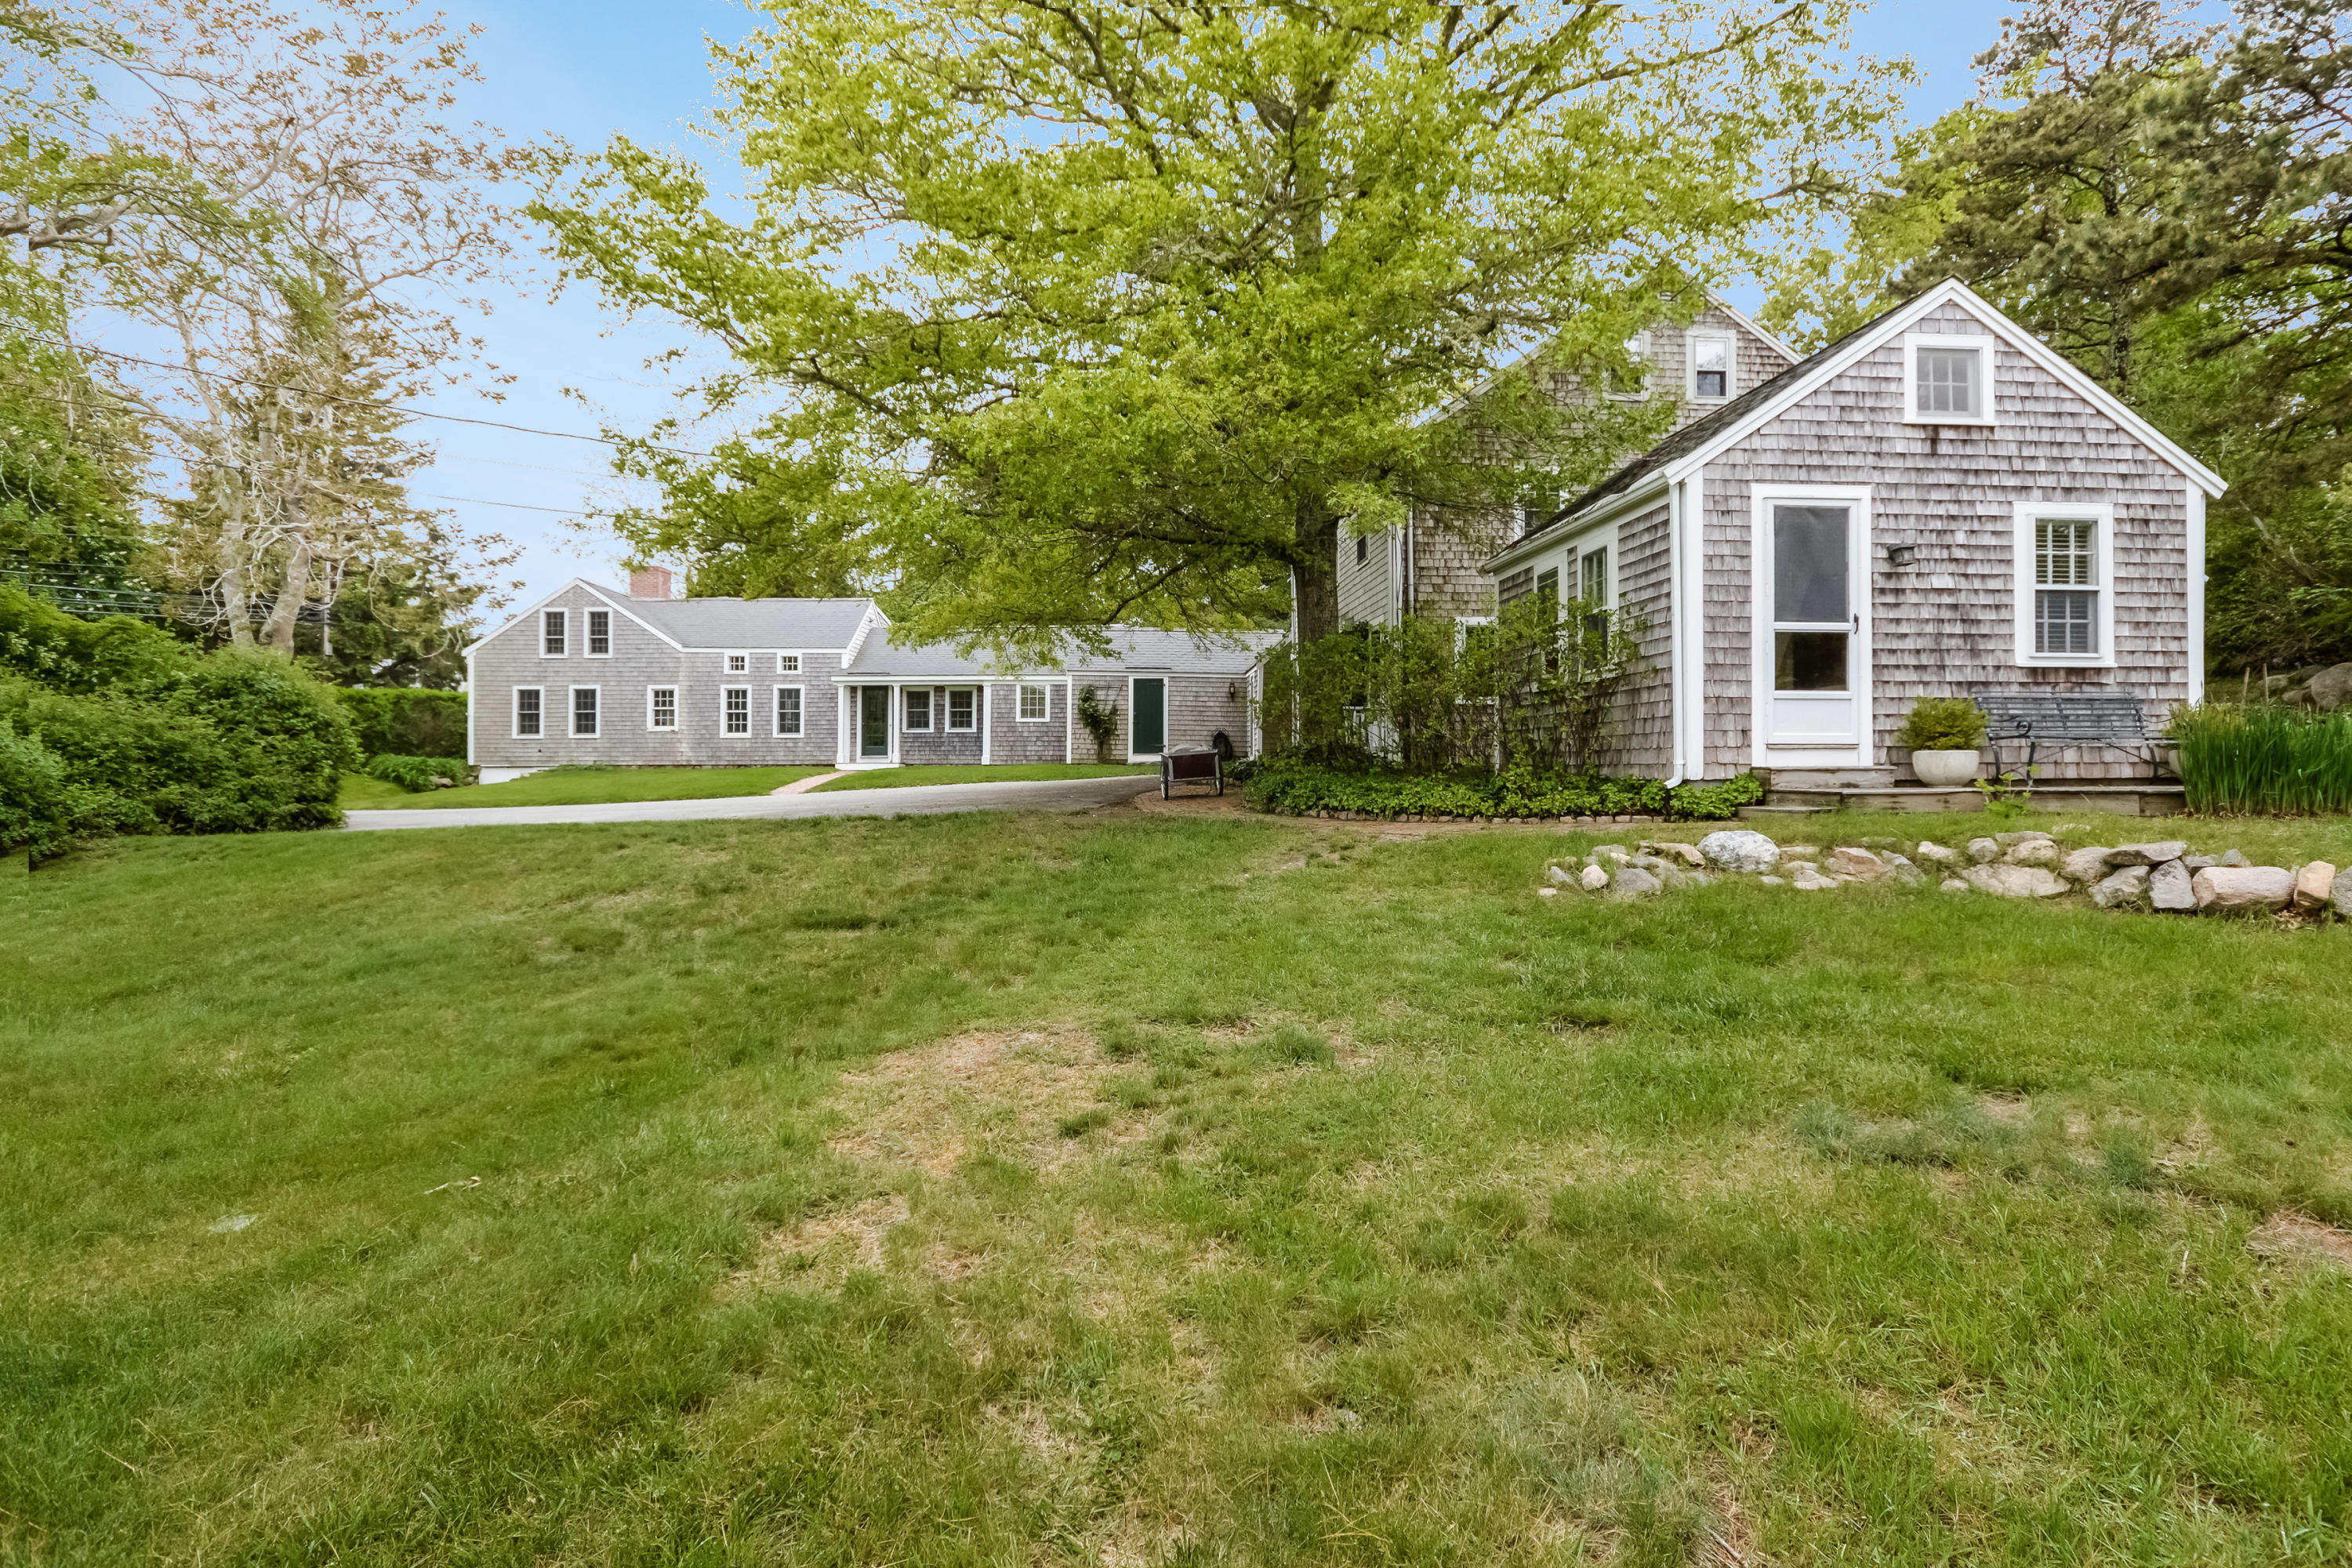 463-long-pond-road-brewster-ma-02631